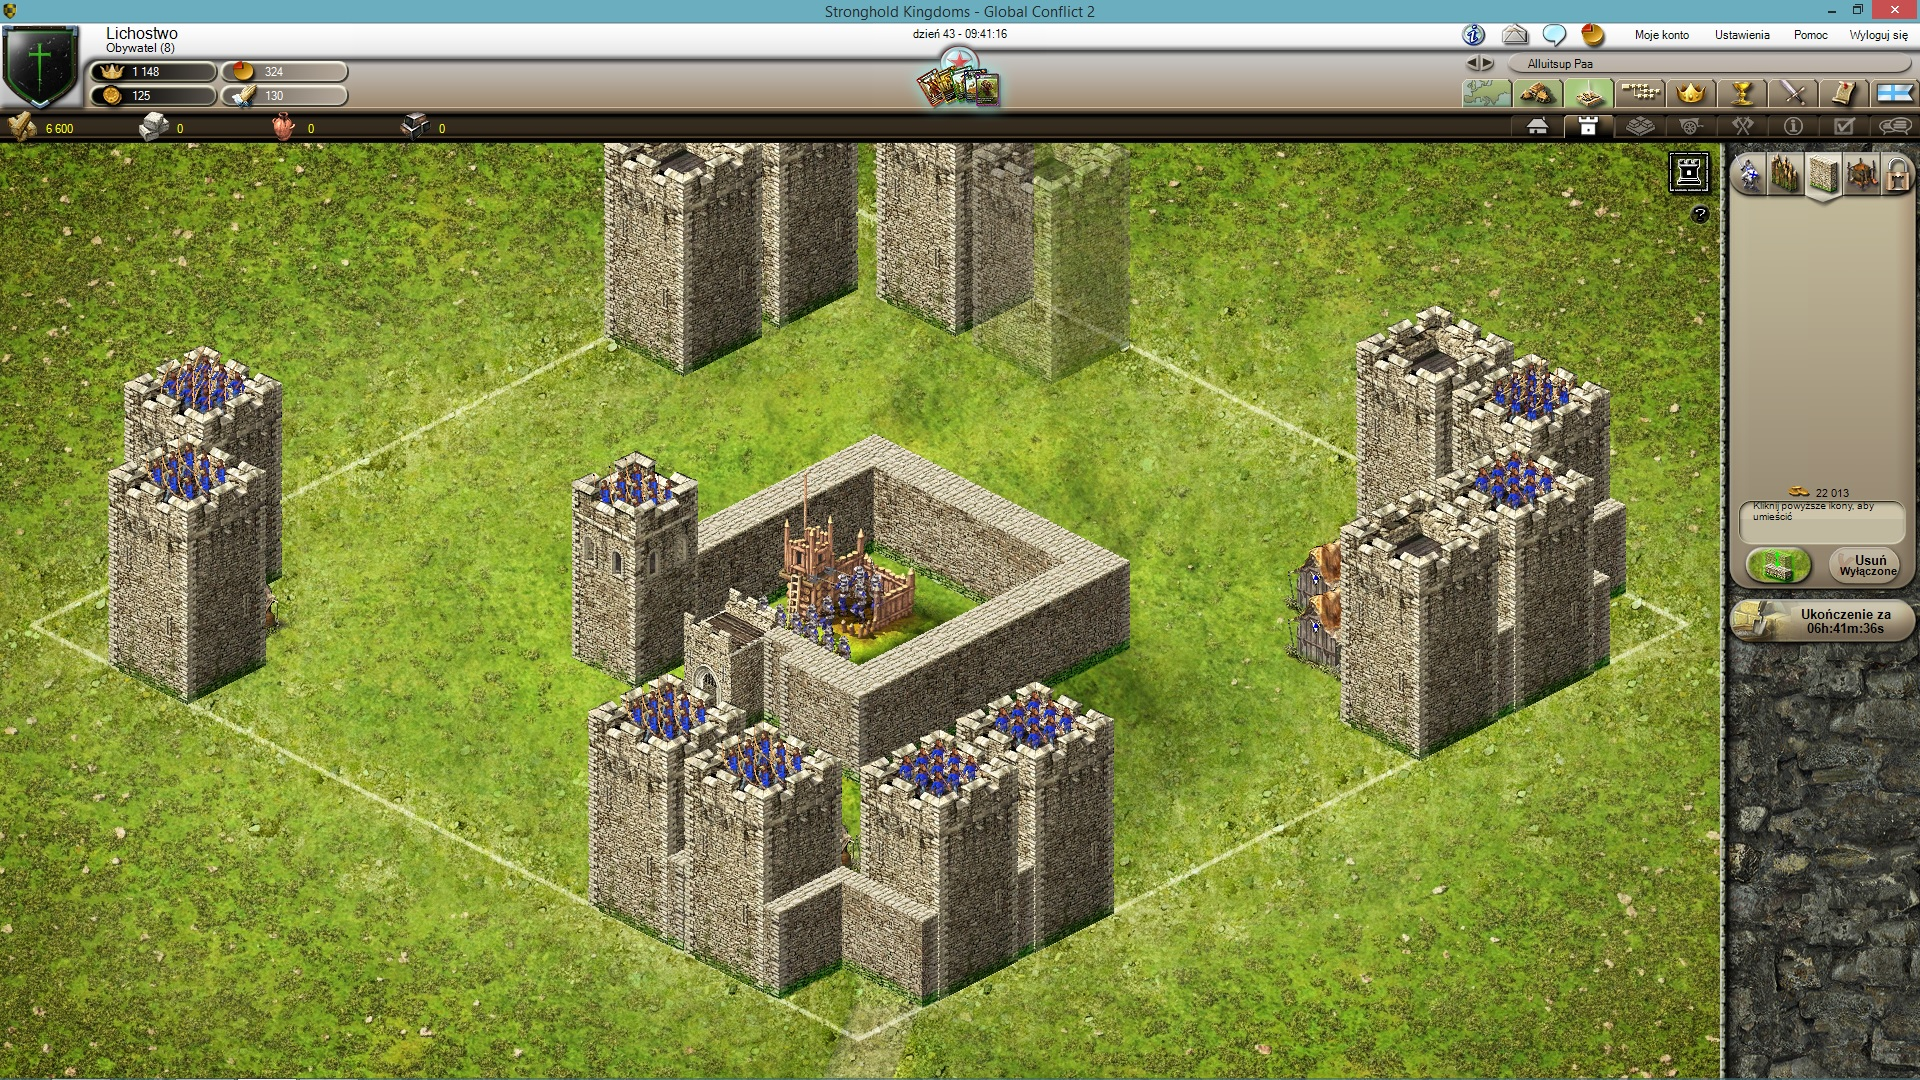 Stronghold Kingdoms gra strategiczna